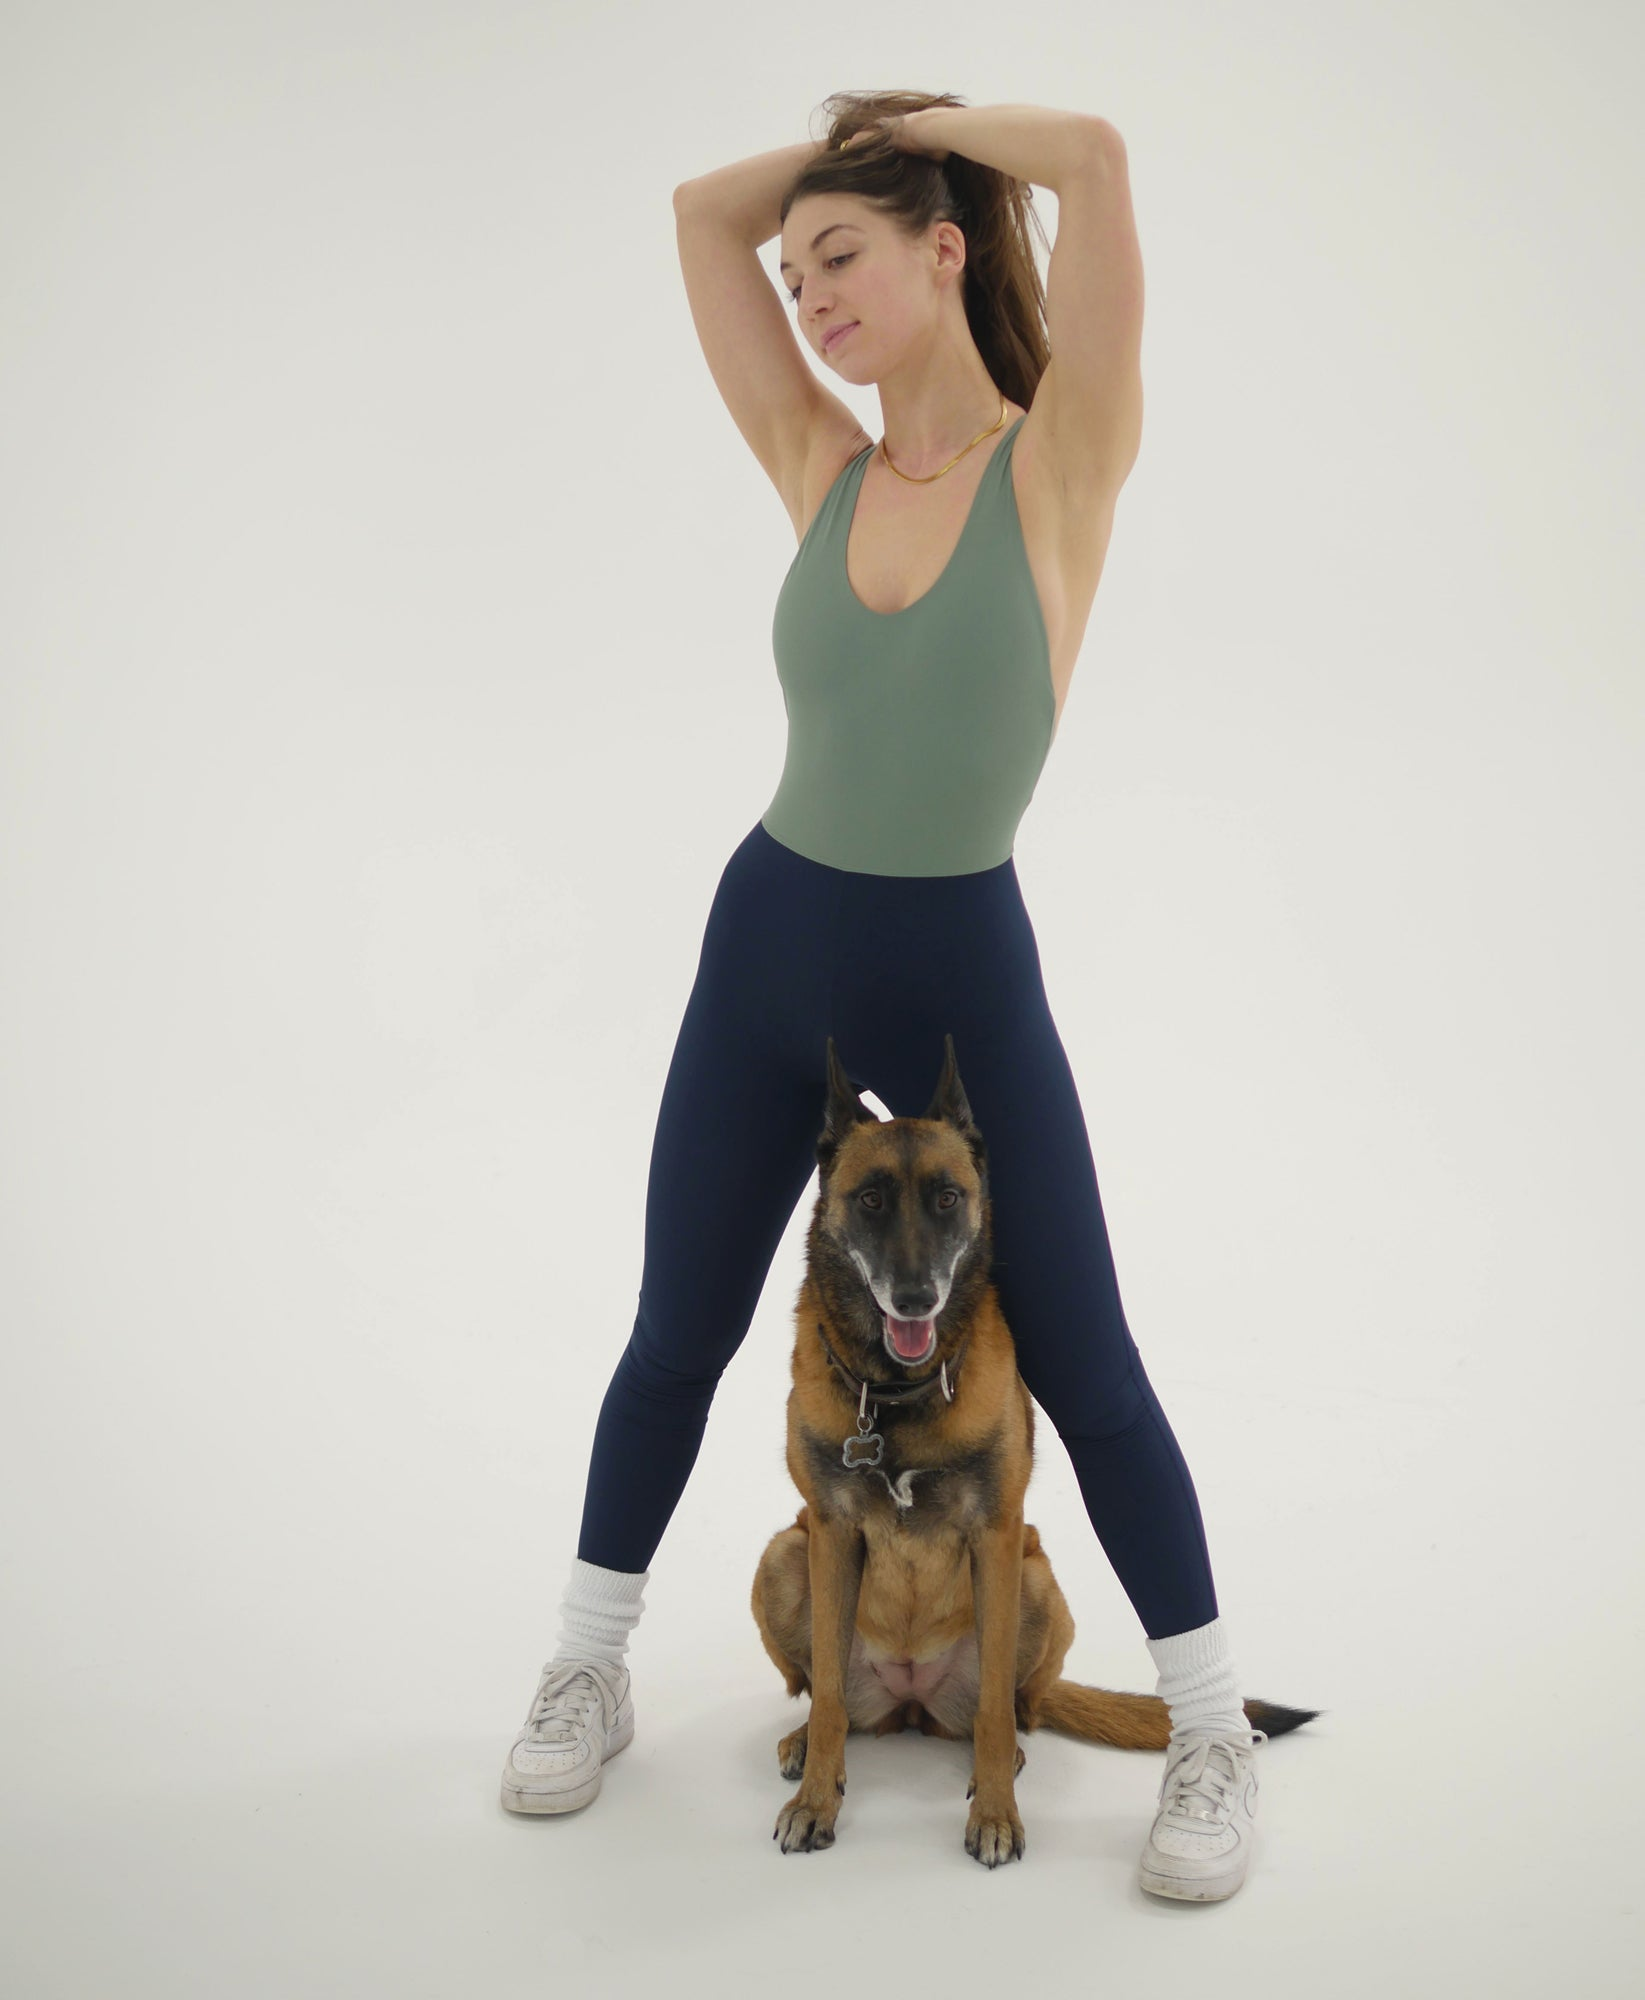 Wear One's At Liberty Unitard in Sage and Navy on Model with Dog Full Front View